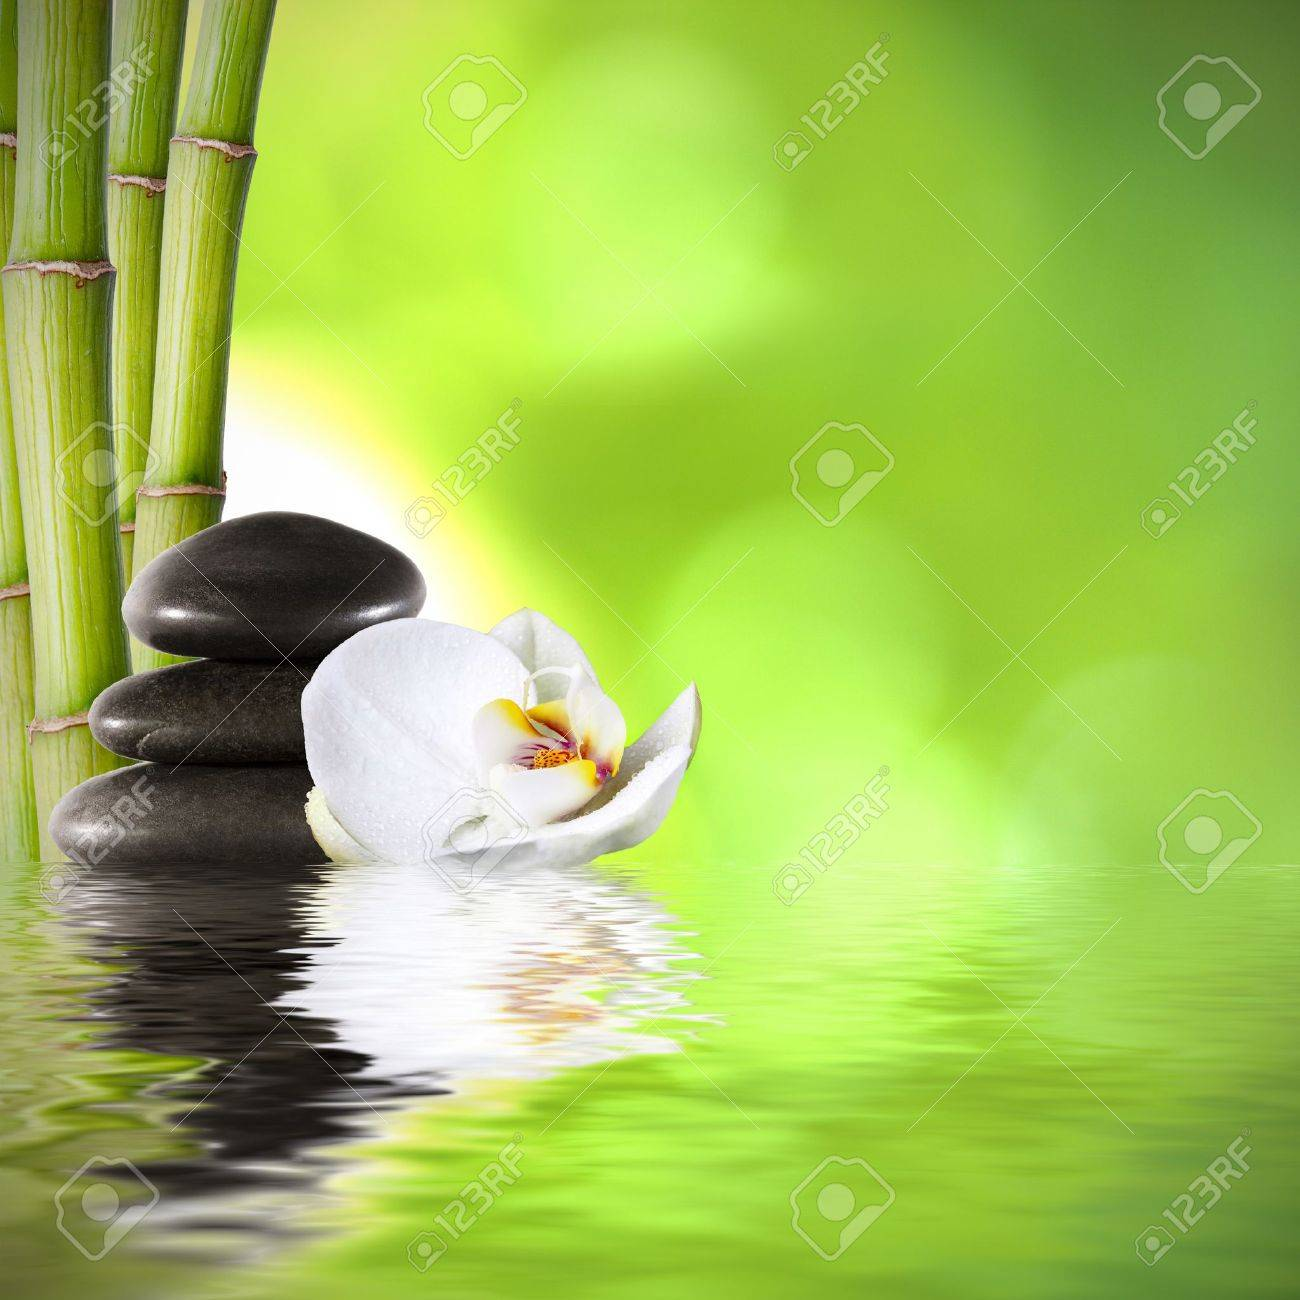 bamboo trunks, fund spa decoration stock photo, picture and